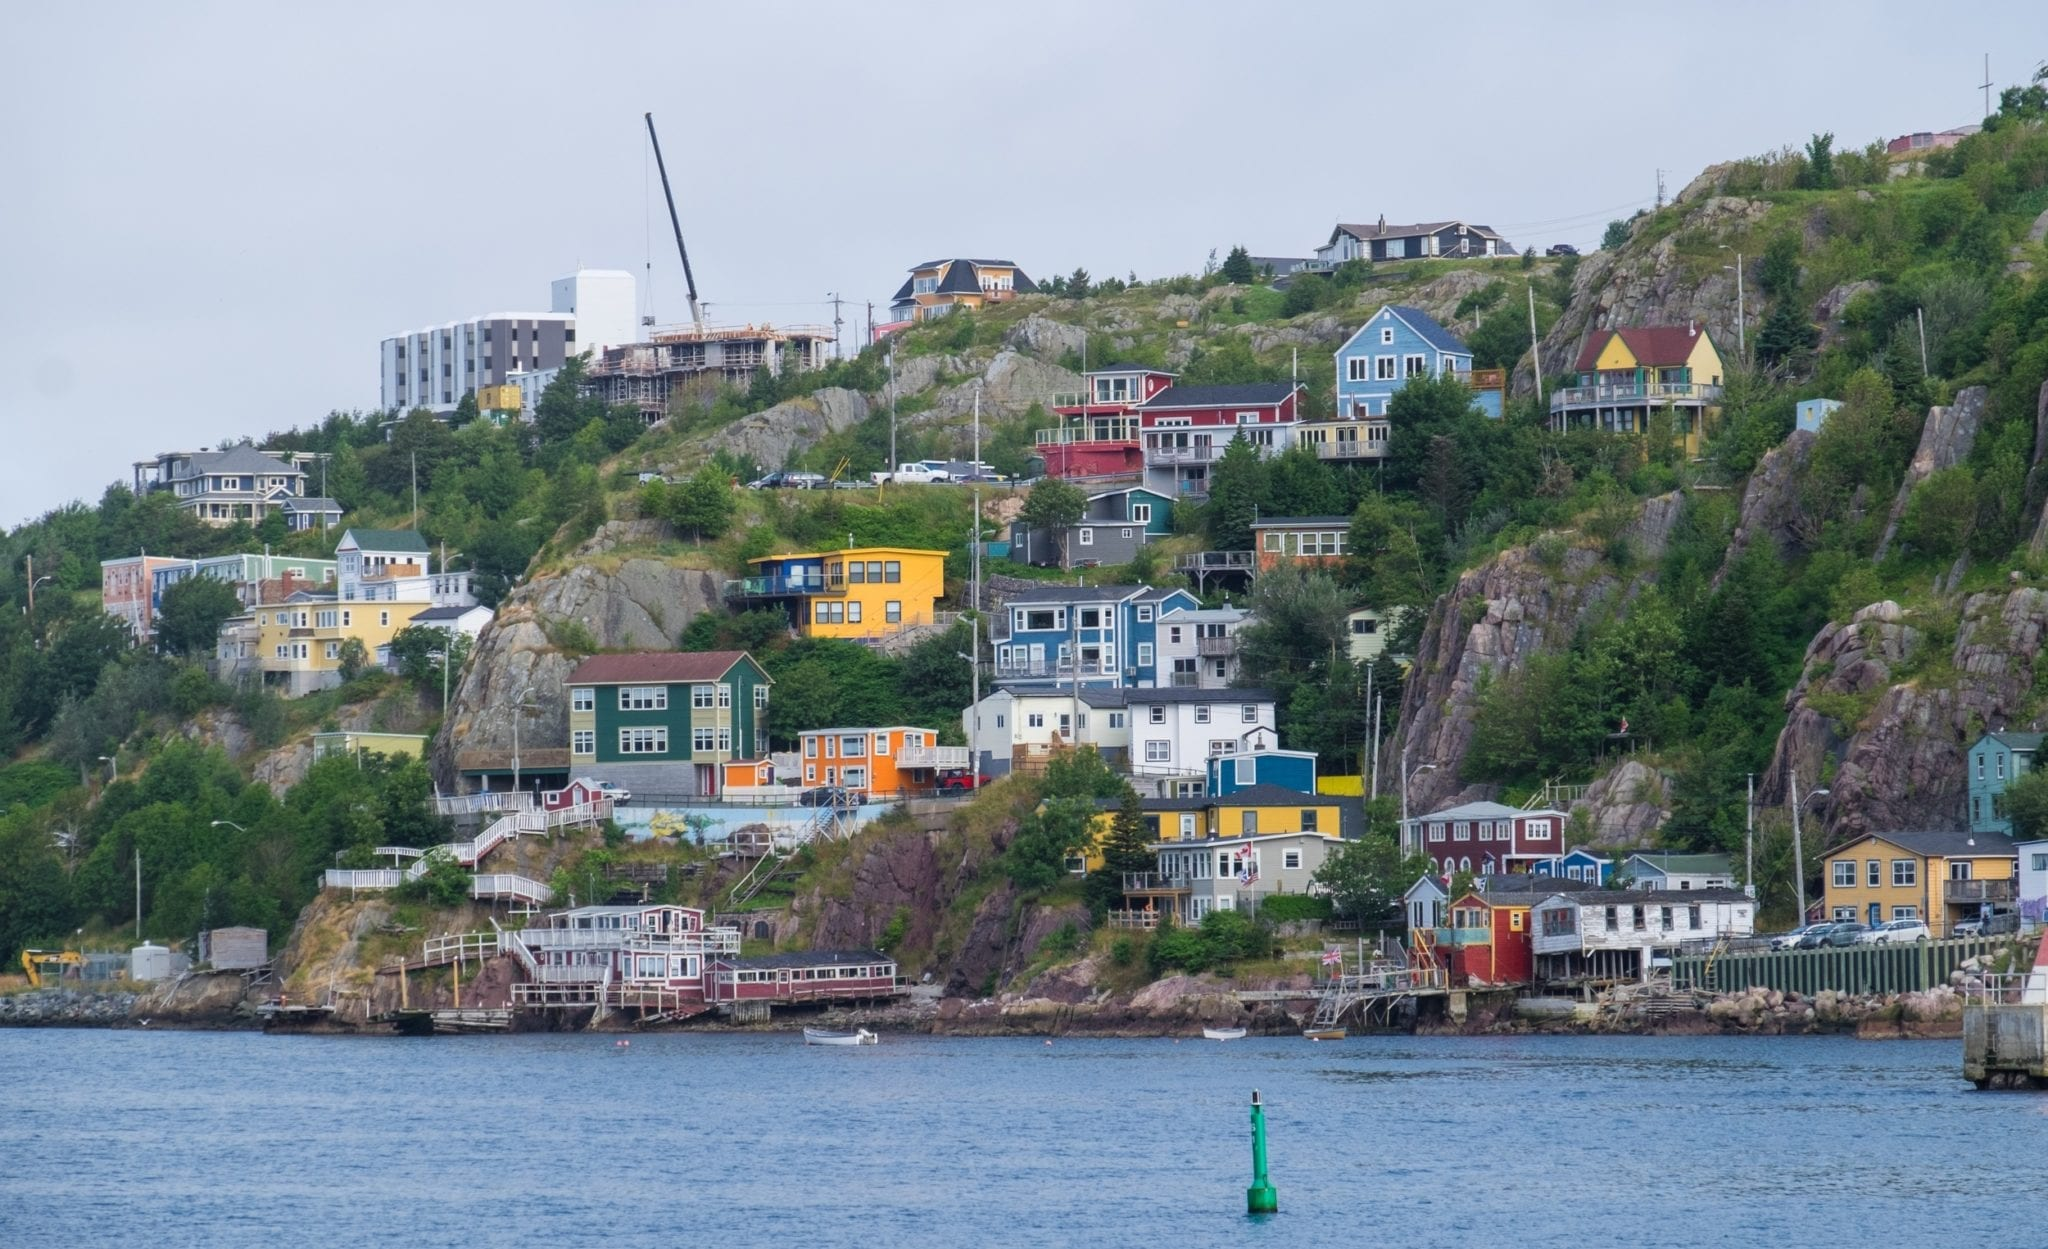 The same cottages on the harbor, but bright neon and full of life.